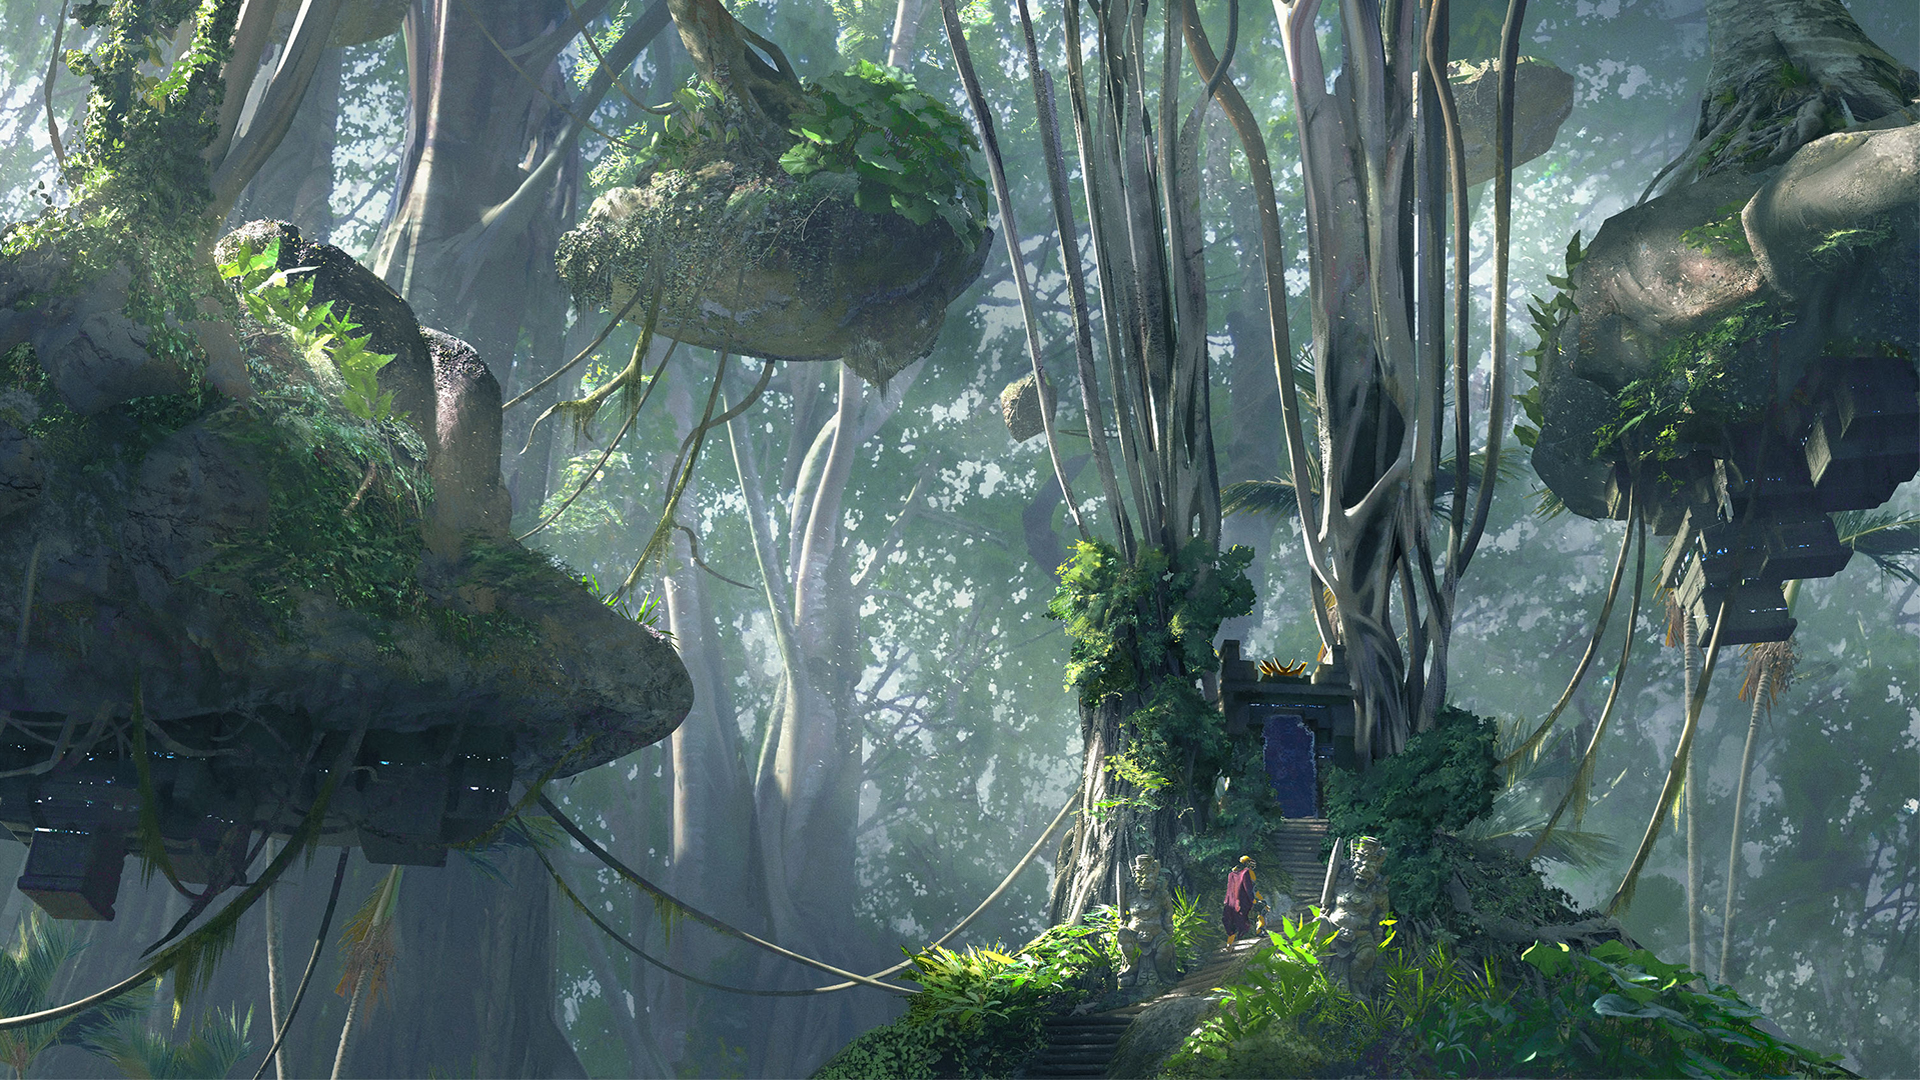 Jungle-Gateway_jamescombridge1920x1080.jpg